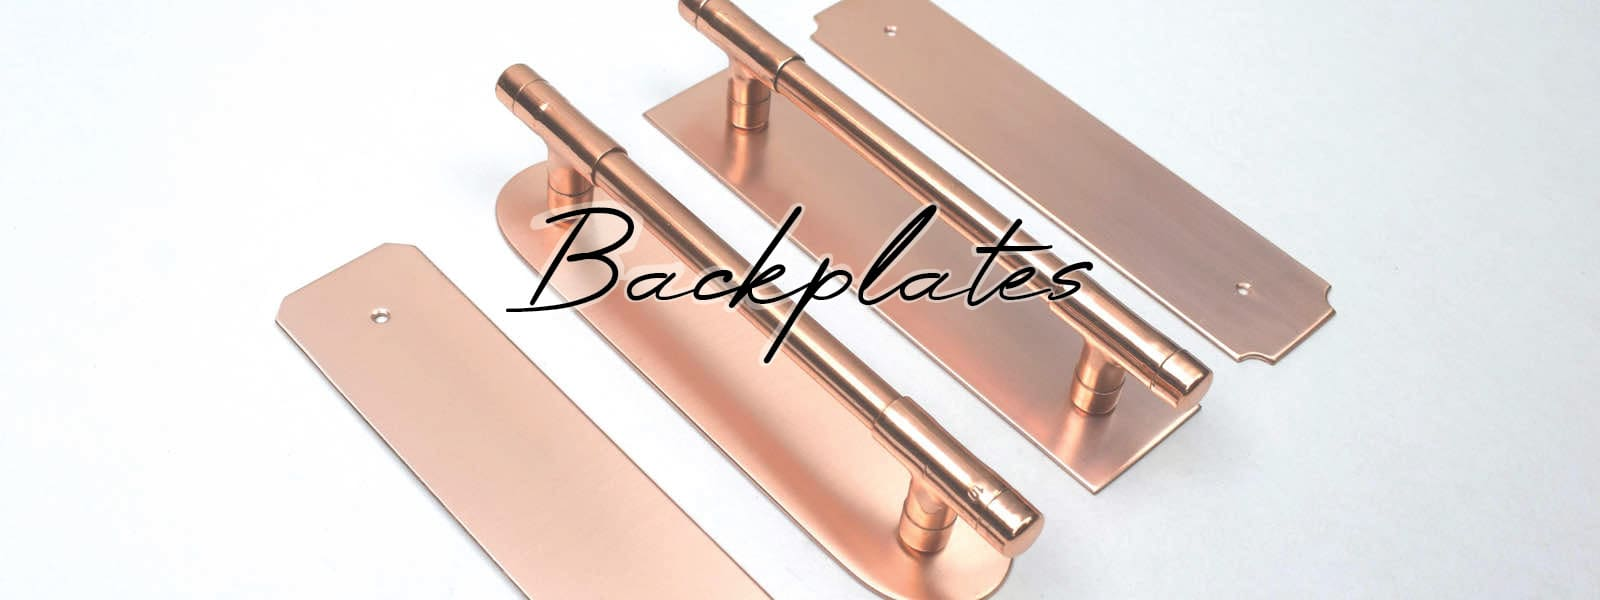 Copper Backplates For Copper Handles and Pushplates